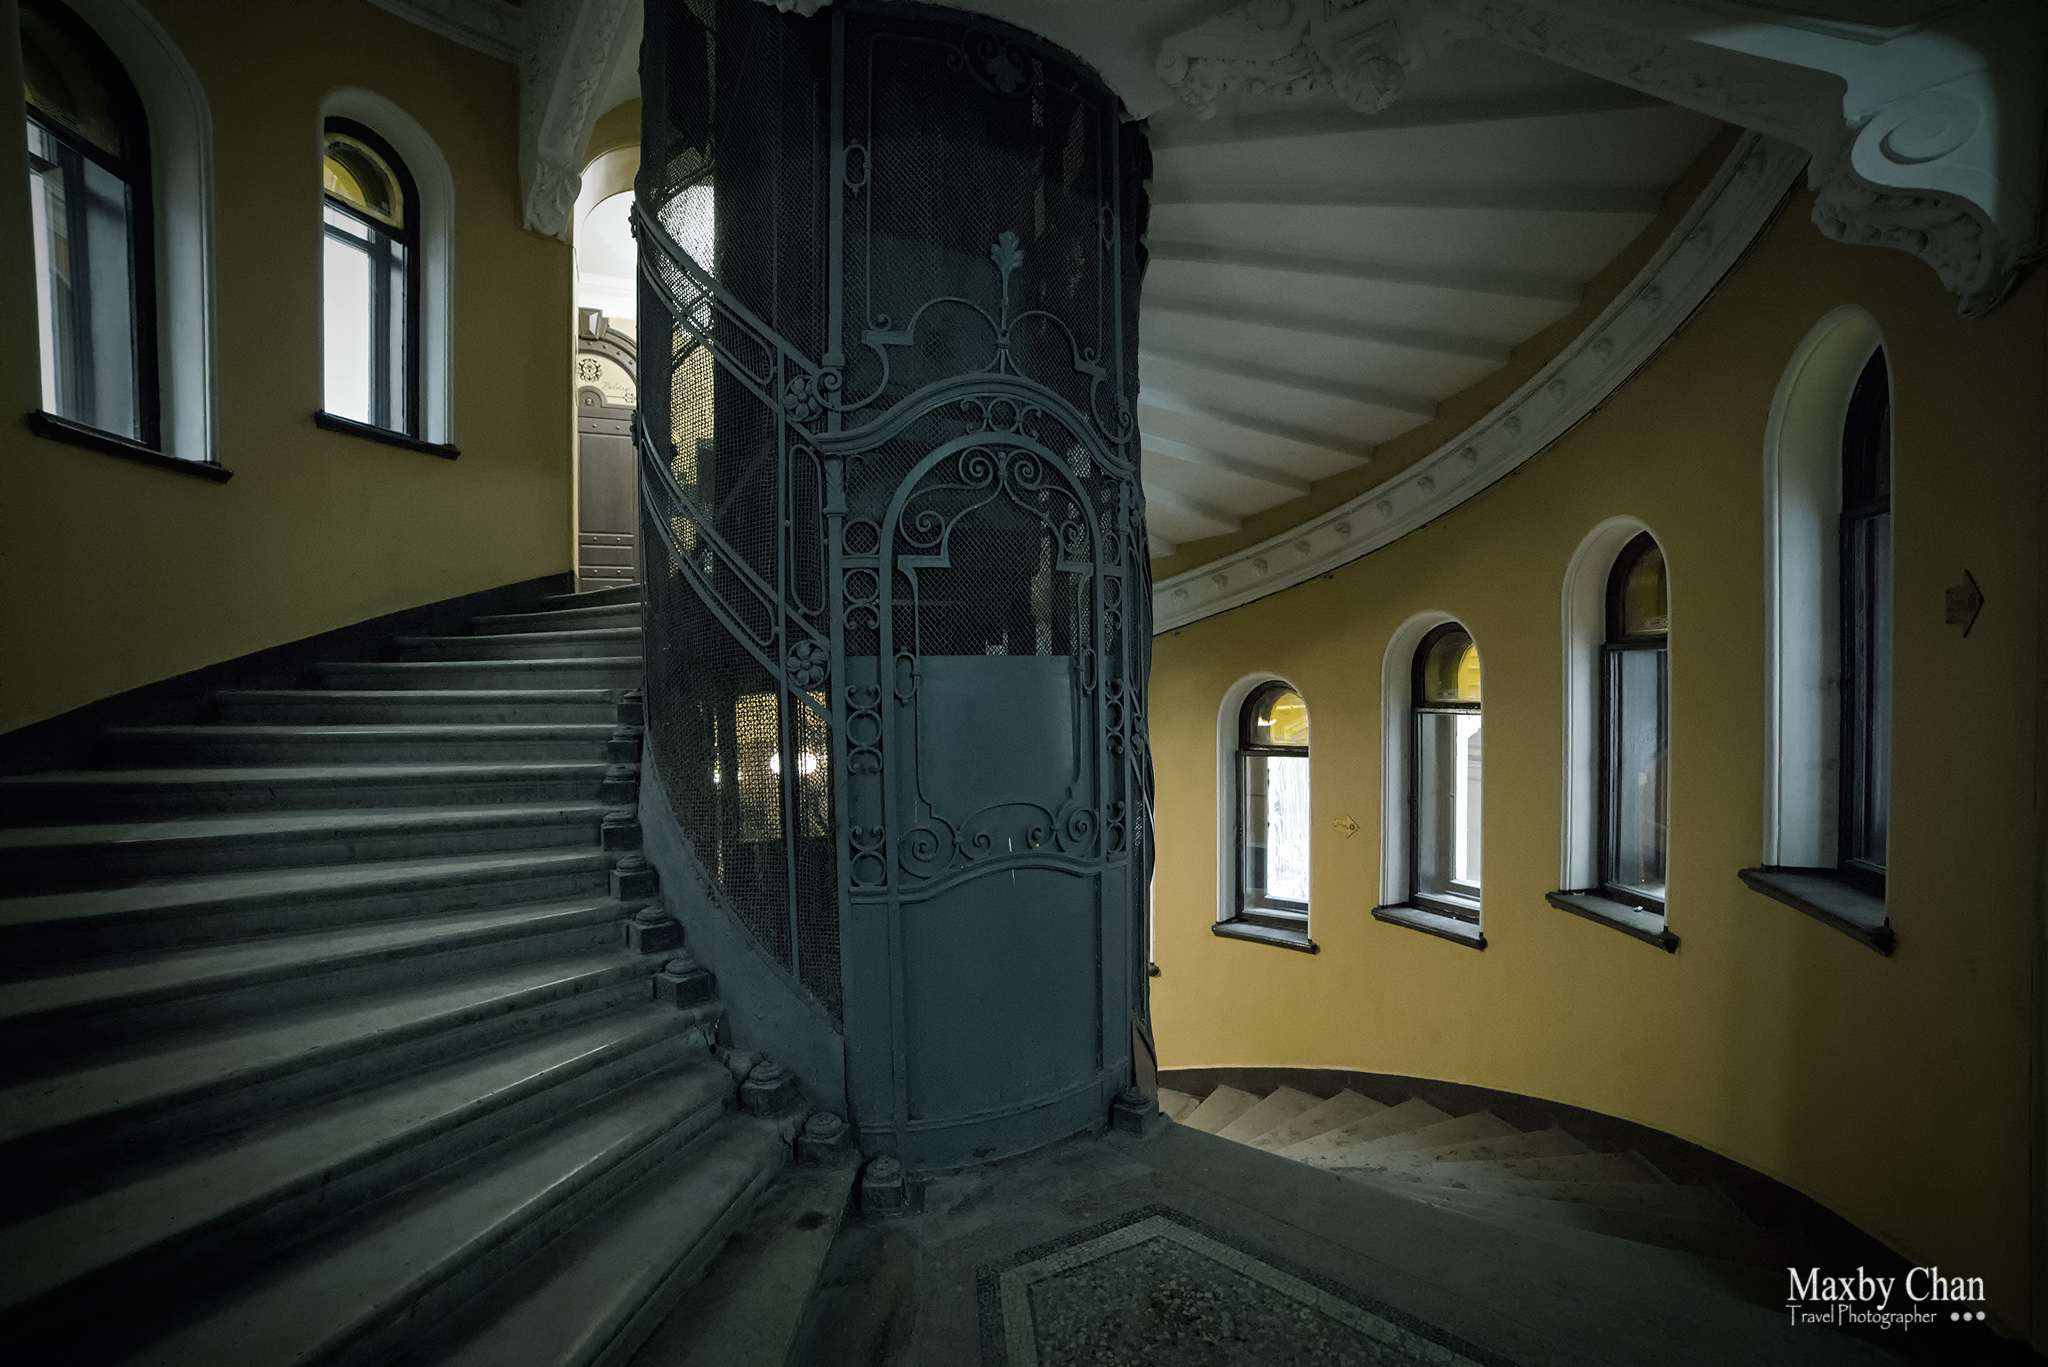 A common spiral staircase with a lift at the central core.